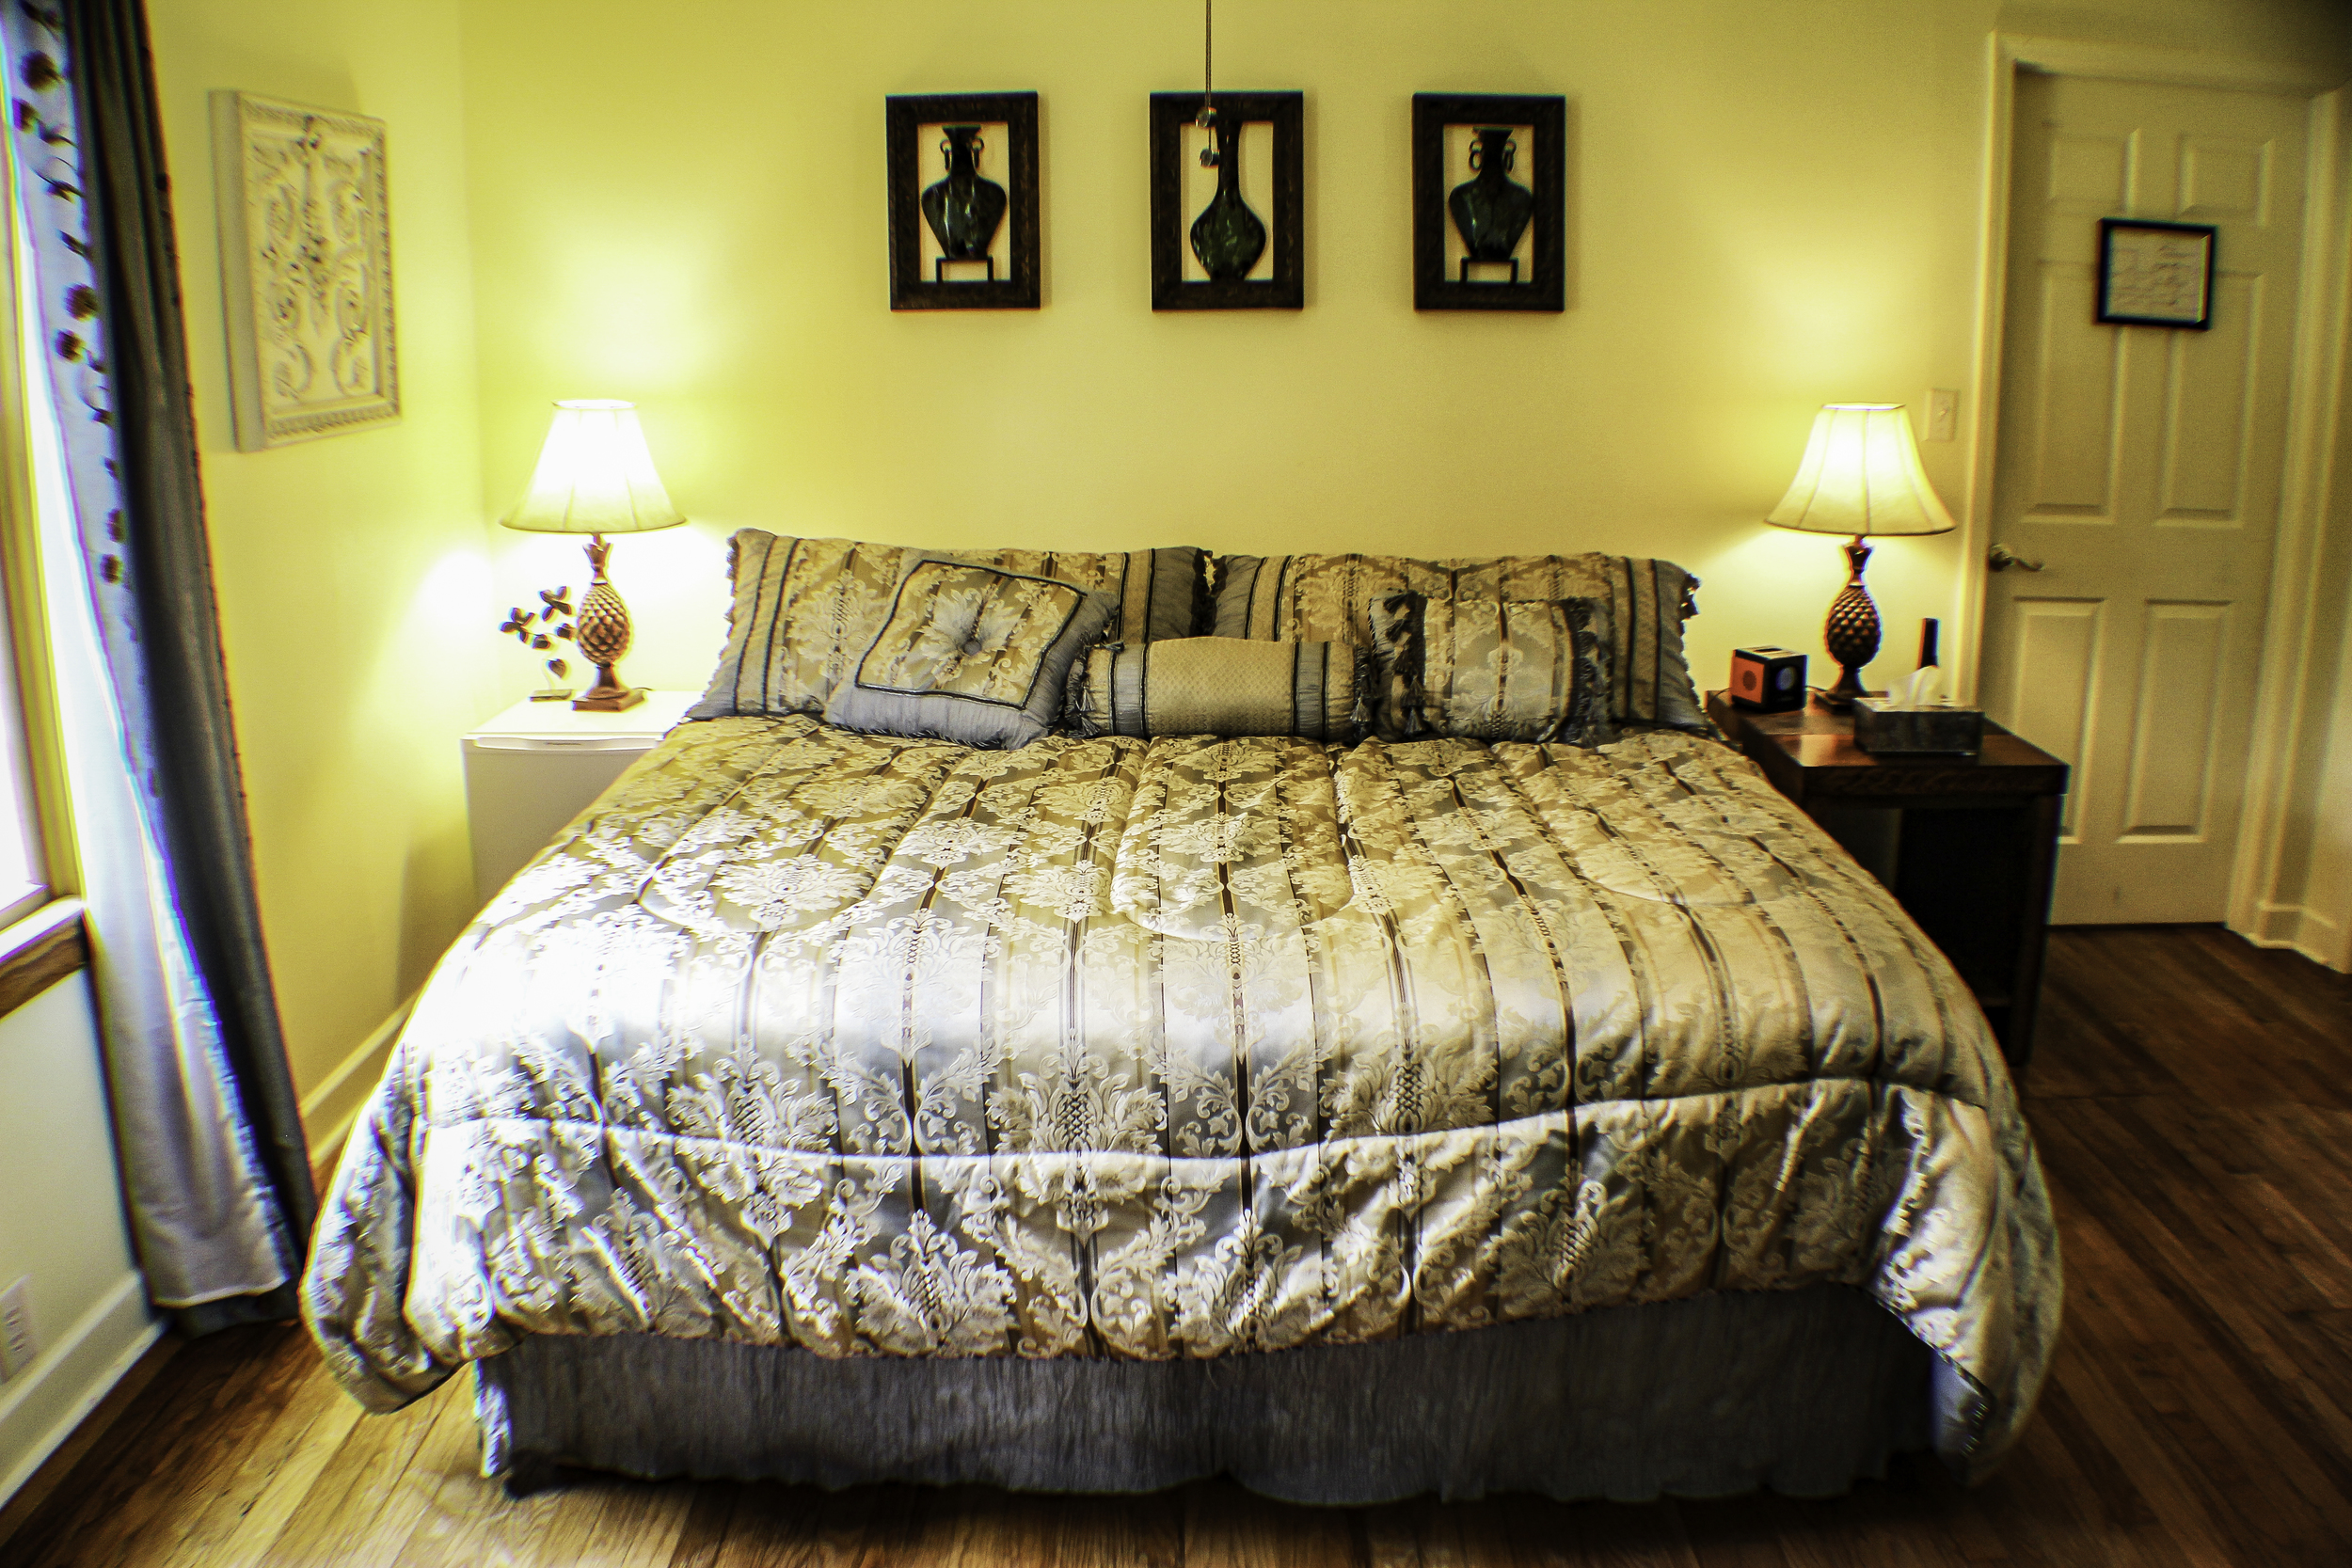 20130610-Canyon Gold King Size Bed.JPG